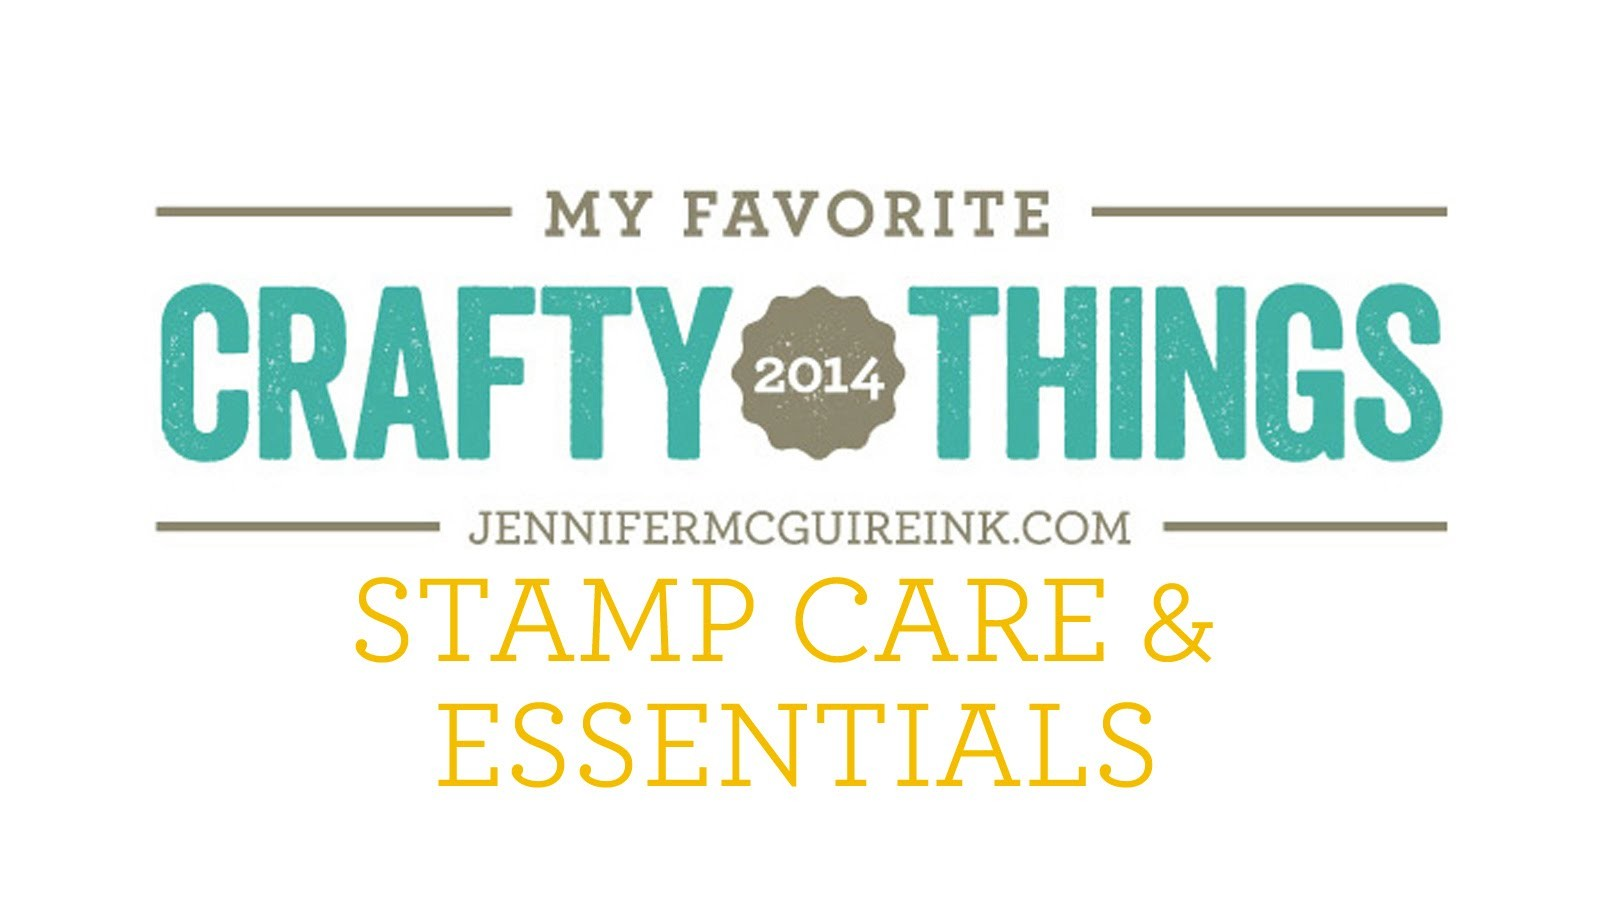 My Favorite Crafty Things 2014 - Stamp Care & Essentials